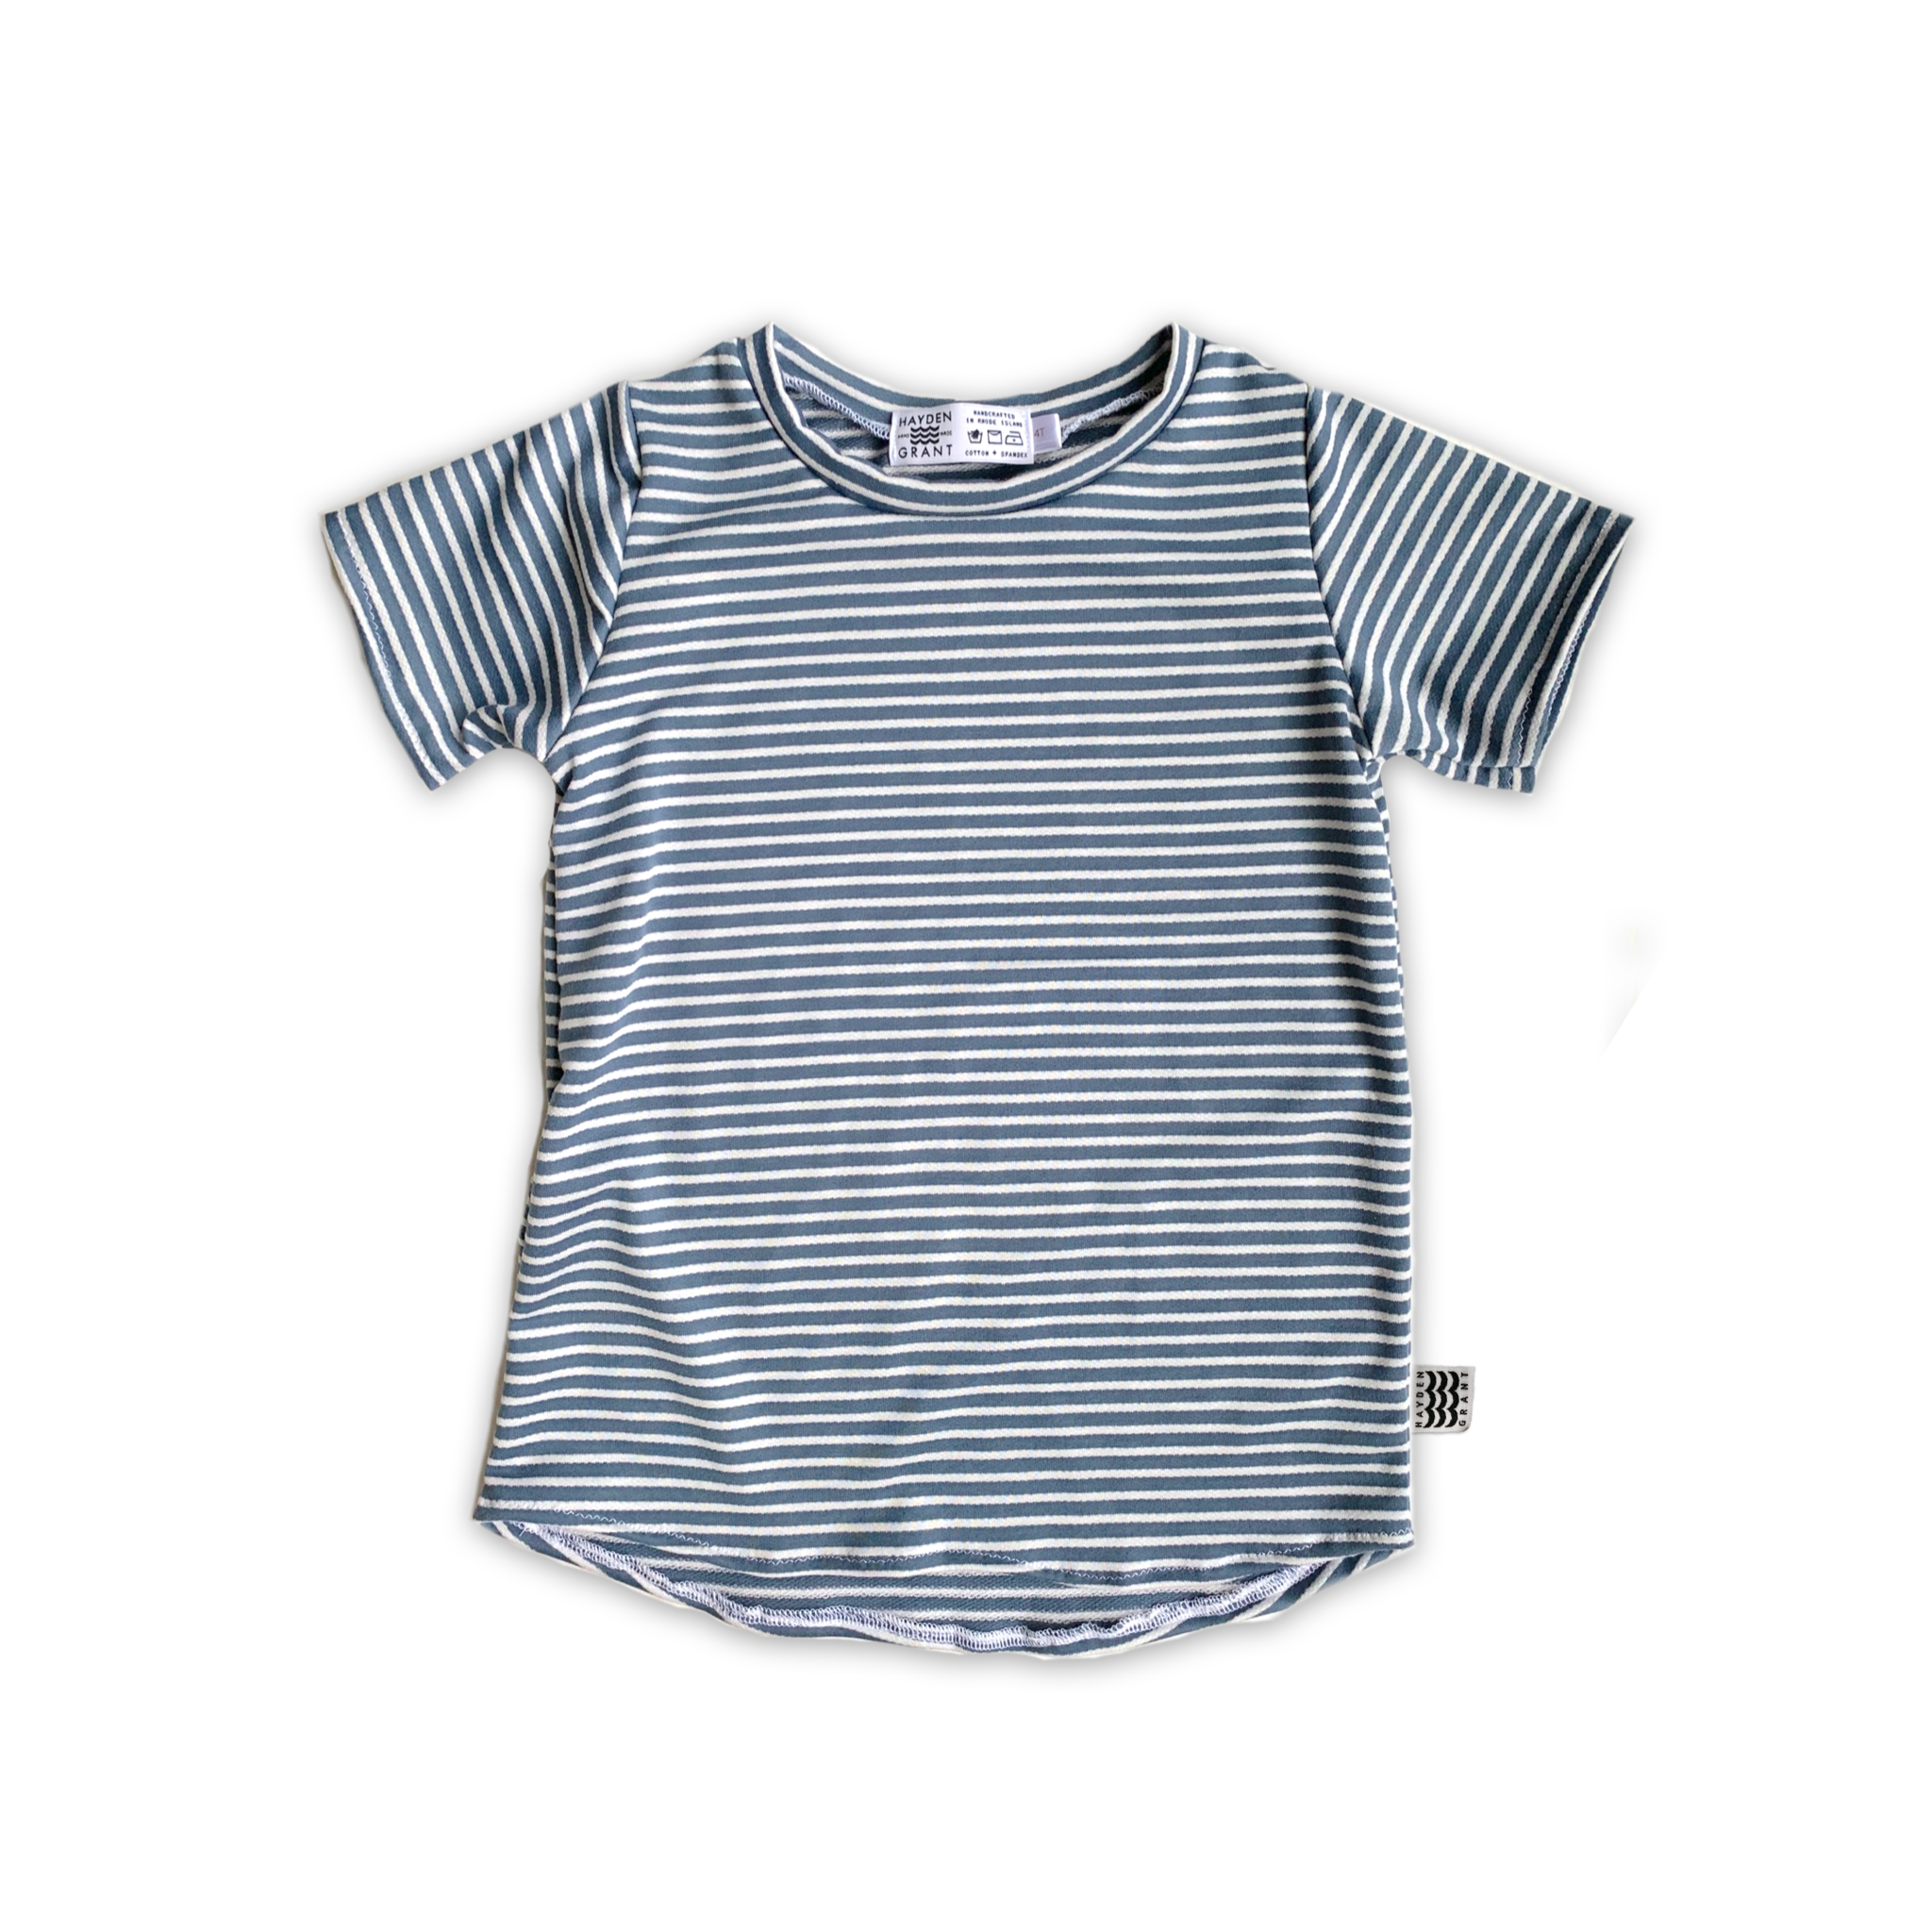 Curved Hem Tee in Sea Salt Stripe